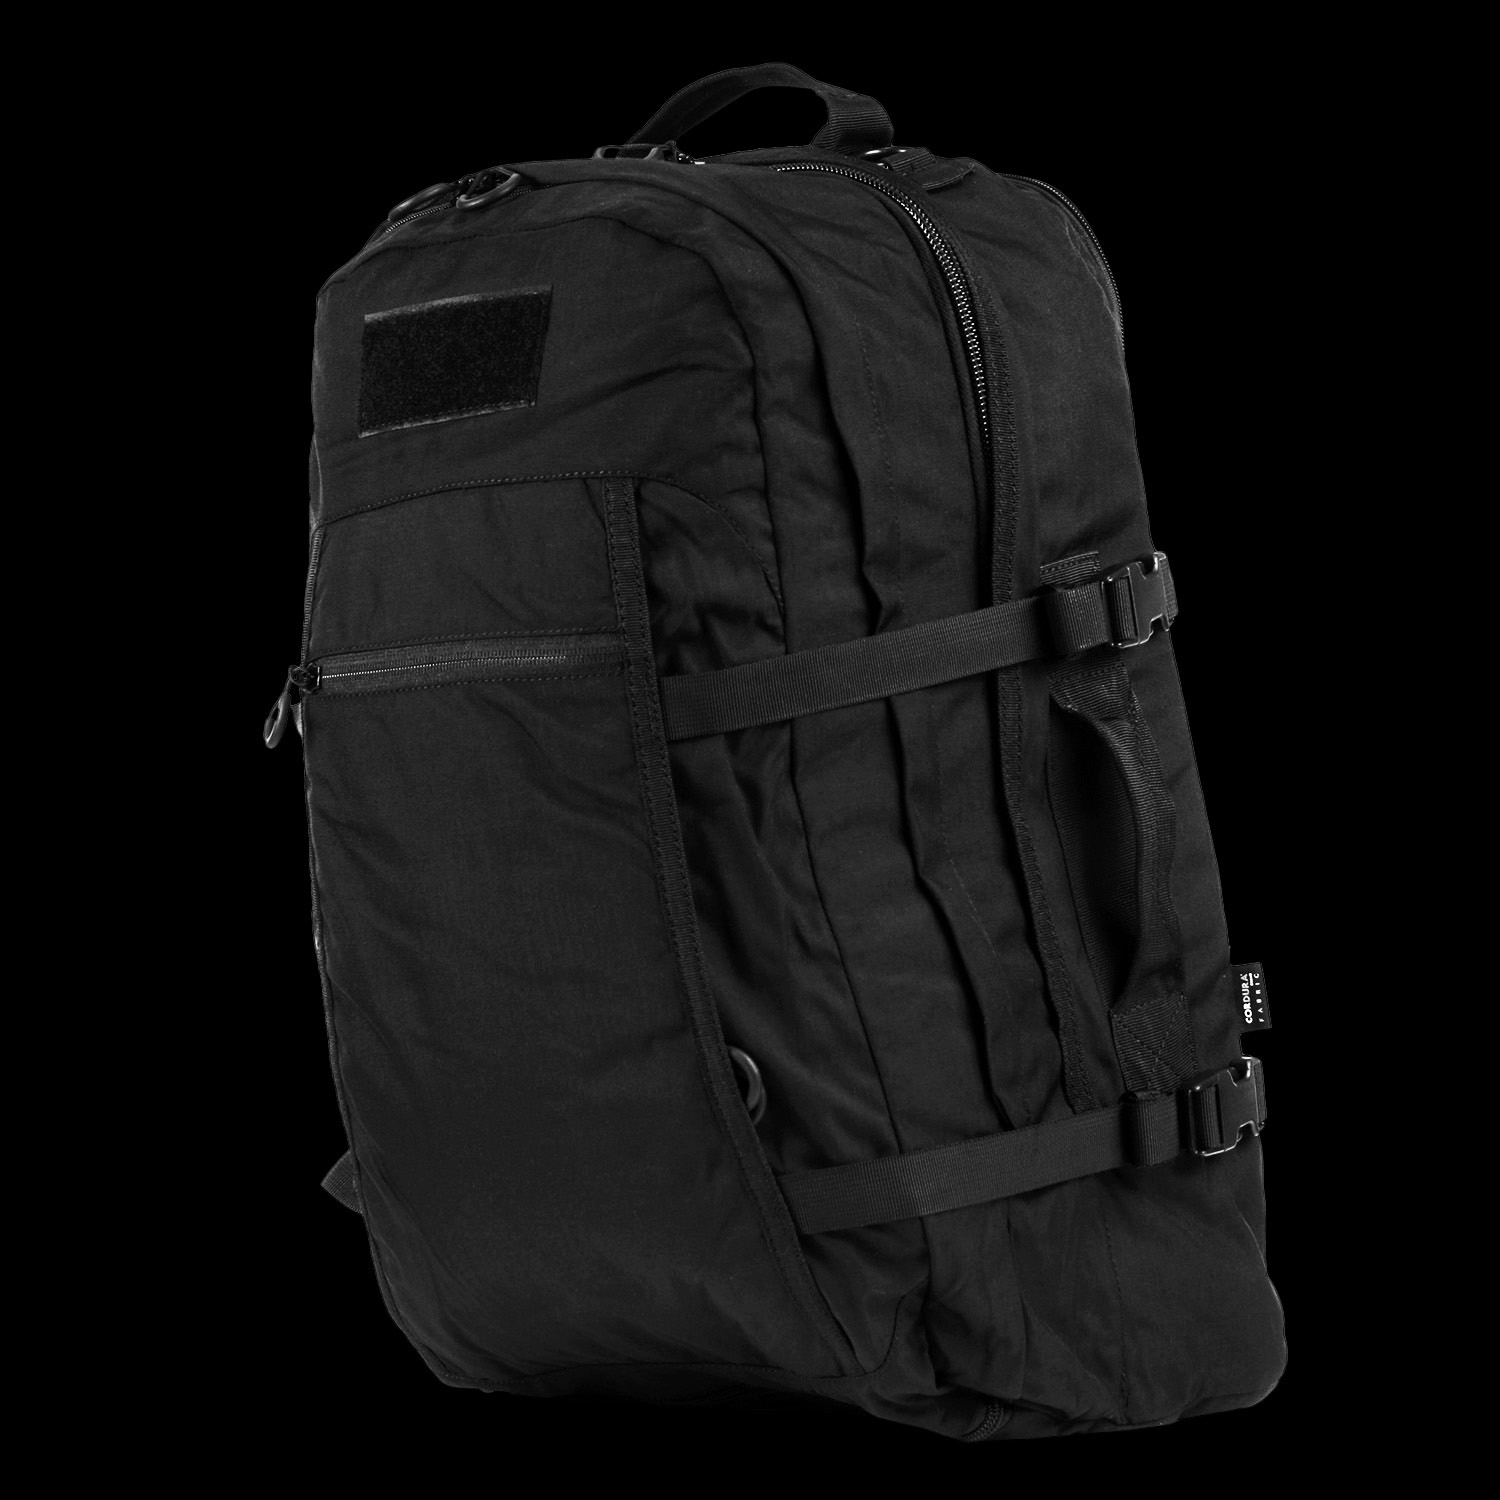 TF-2215 TravelMate Backpack Black